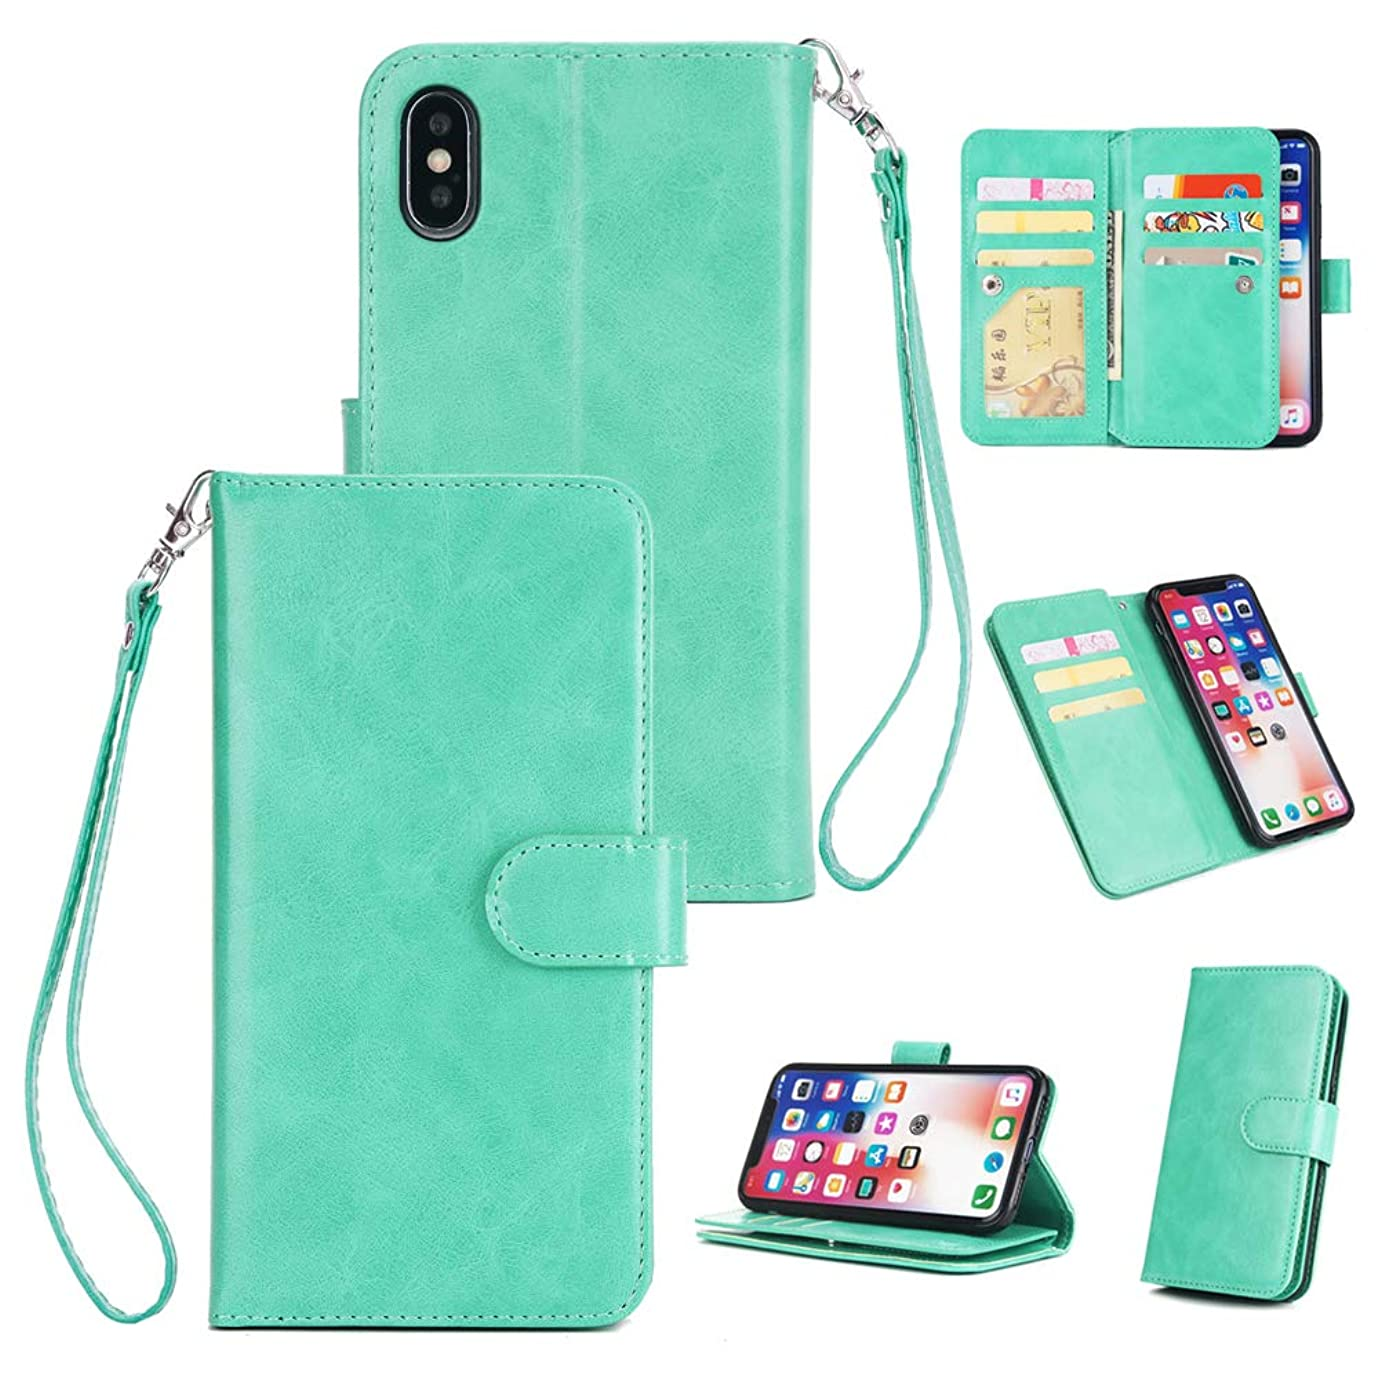 iPhone Xs Max Case, iPhone Xs Max 2018 Case Wallet Morden Simple Leather Cover Kickstand Multi 9 Card Slot Shock Absorption Bumper Magnetic Closure Shell Skin for iPhone Xs Max 6.5'' Edauto - Green